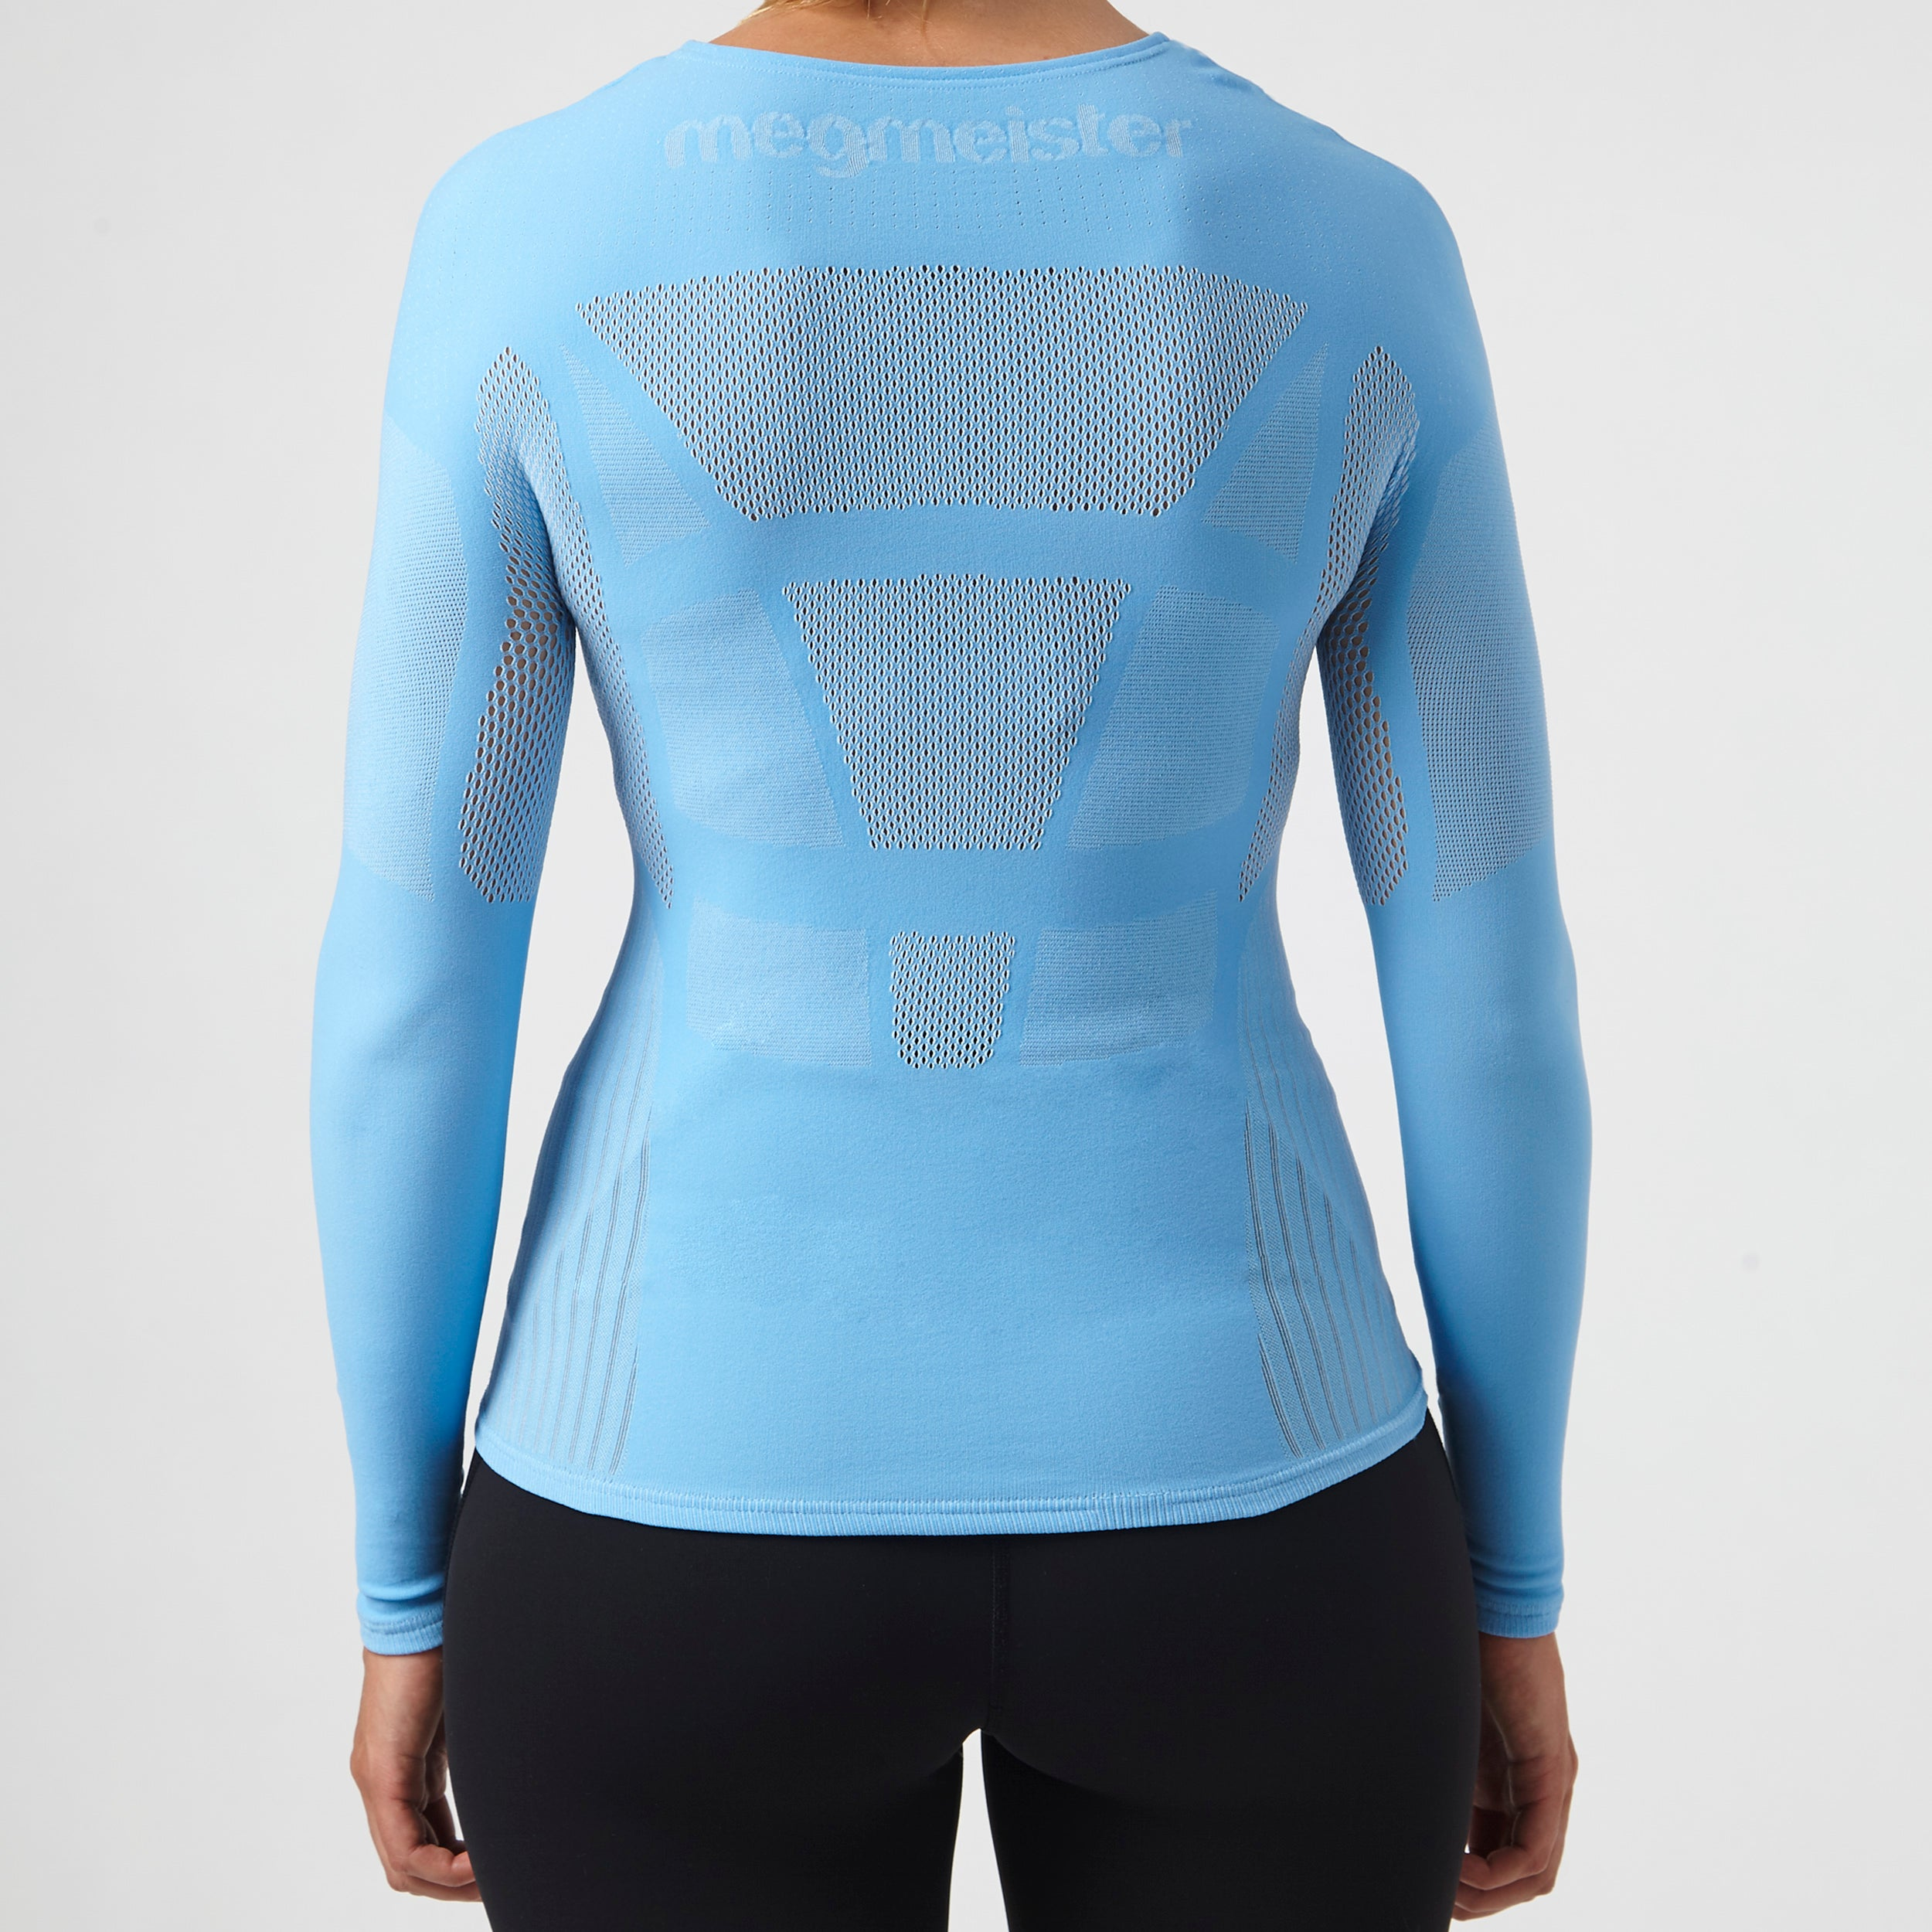 megmeister-womens-drynamo-cycle-long-sleeve-base-layer-in-light-blue-and-mesh-back